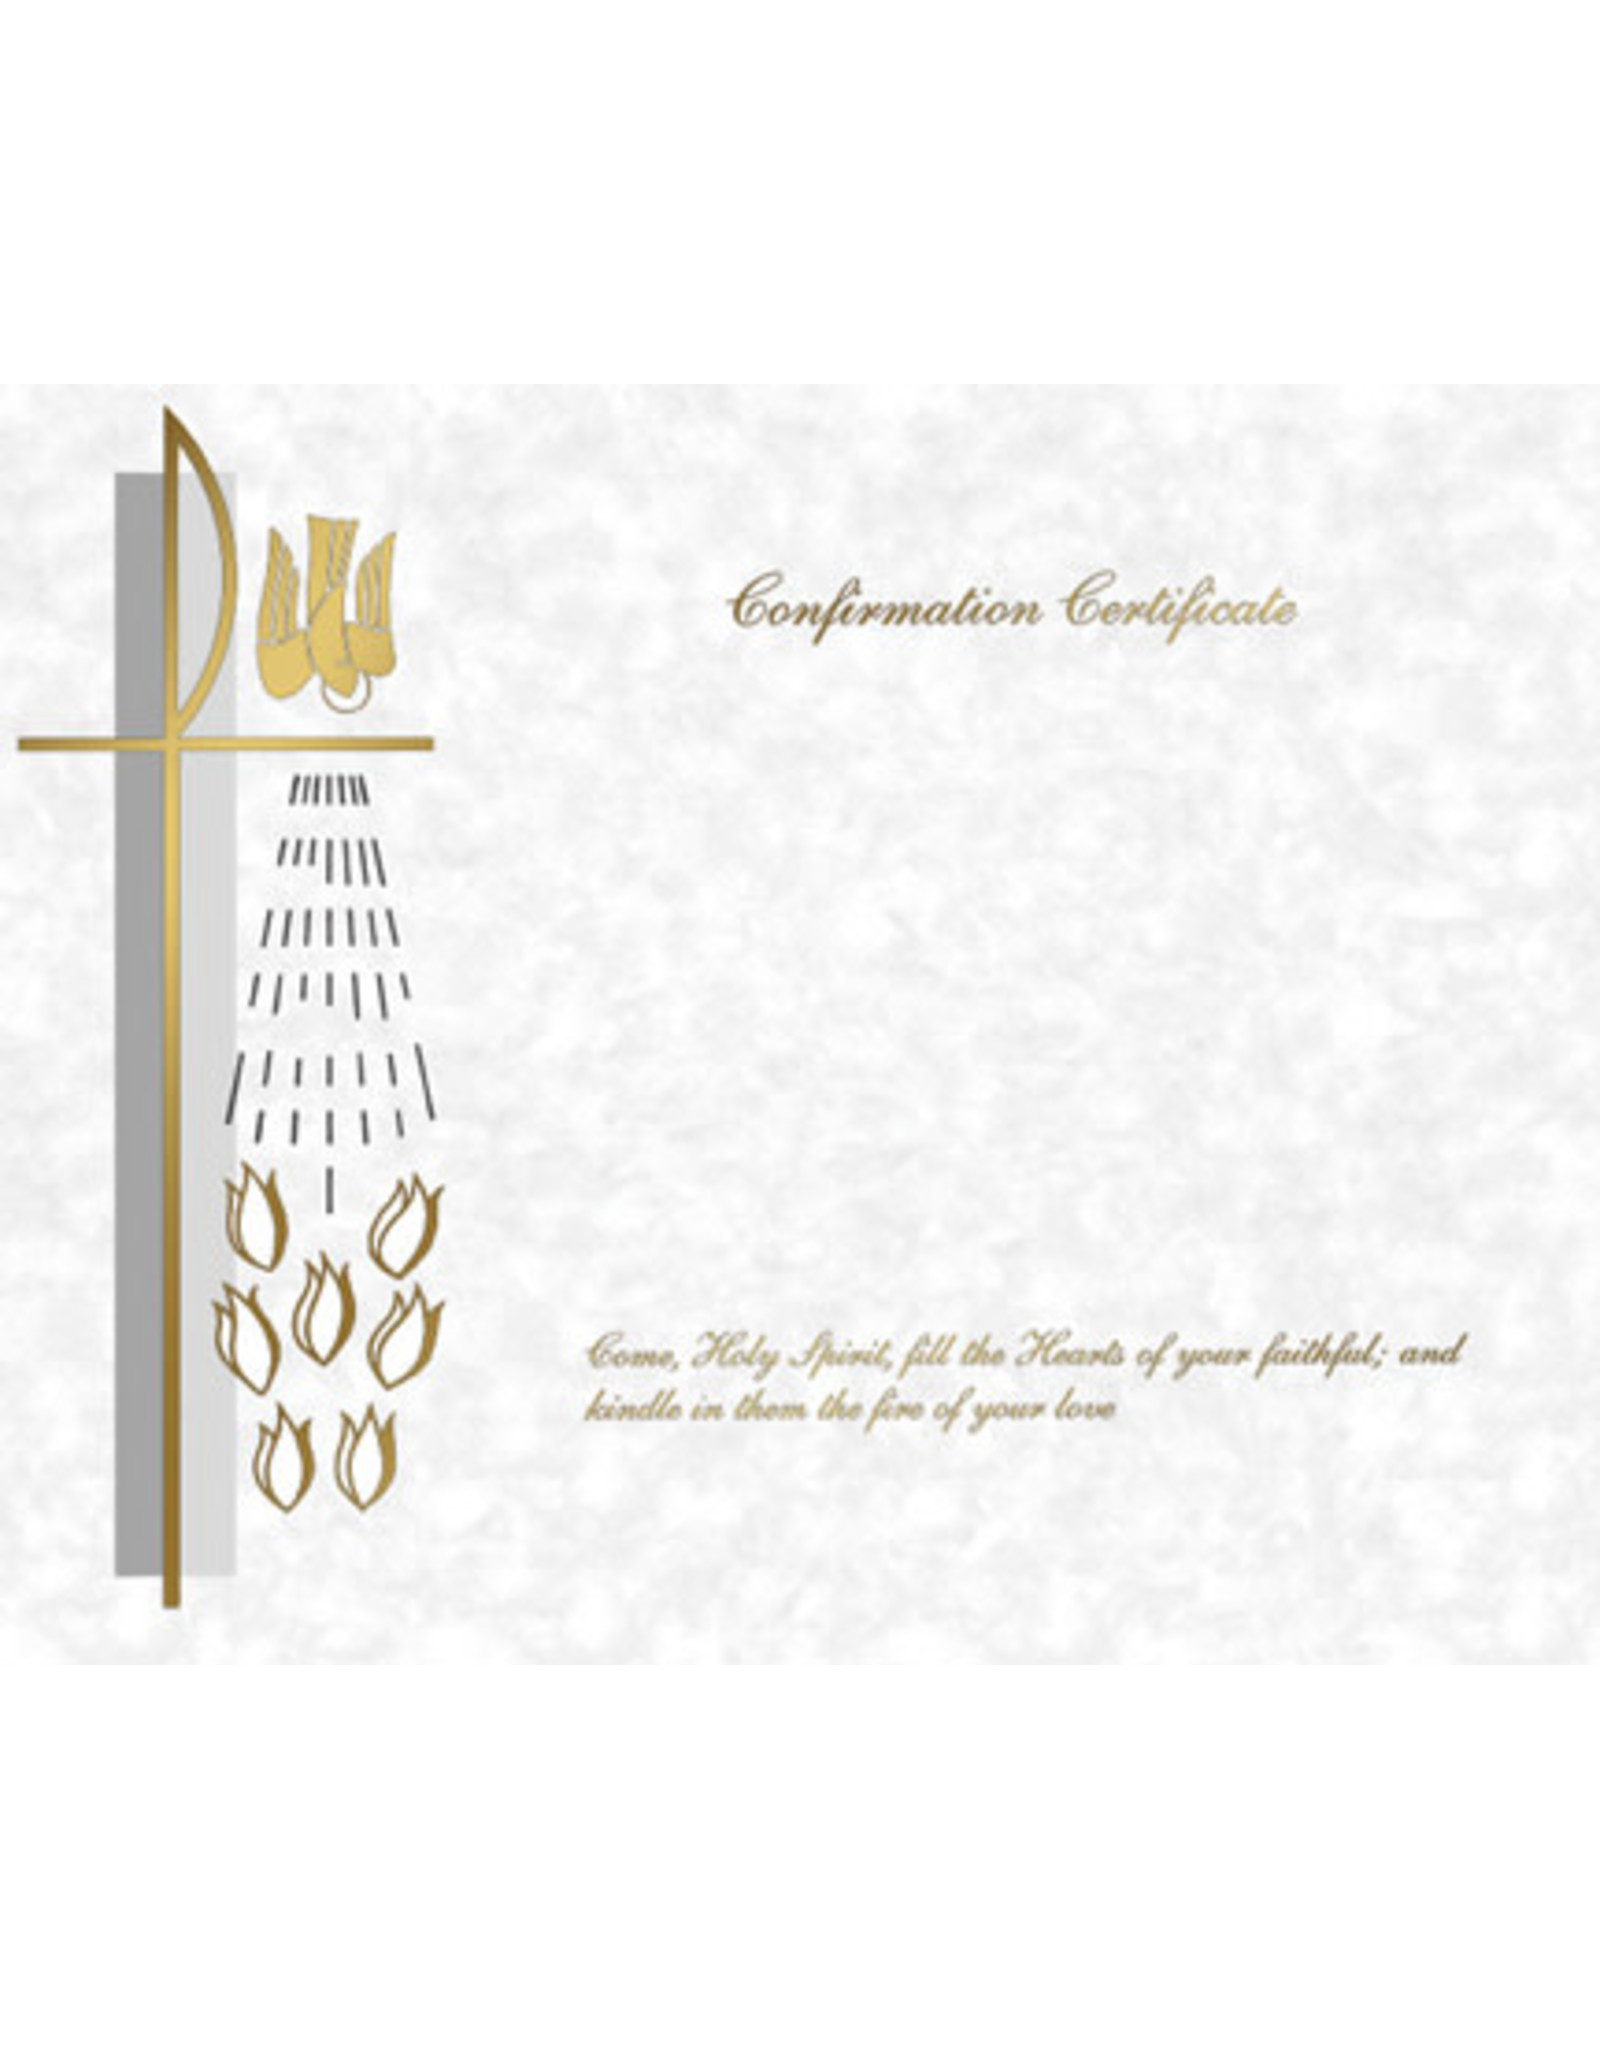 Confirmation Certificate Create-Your-Own (50)